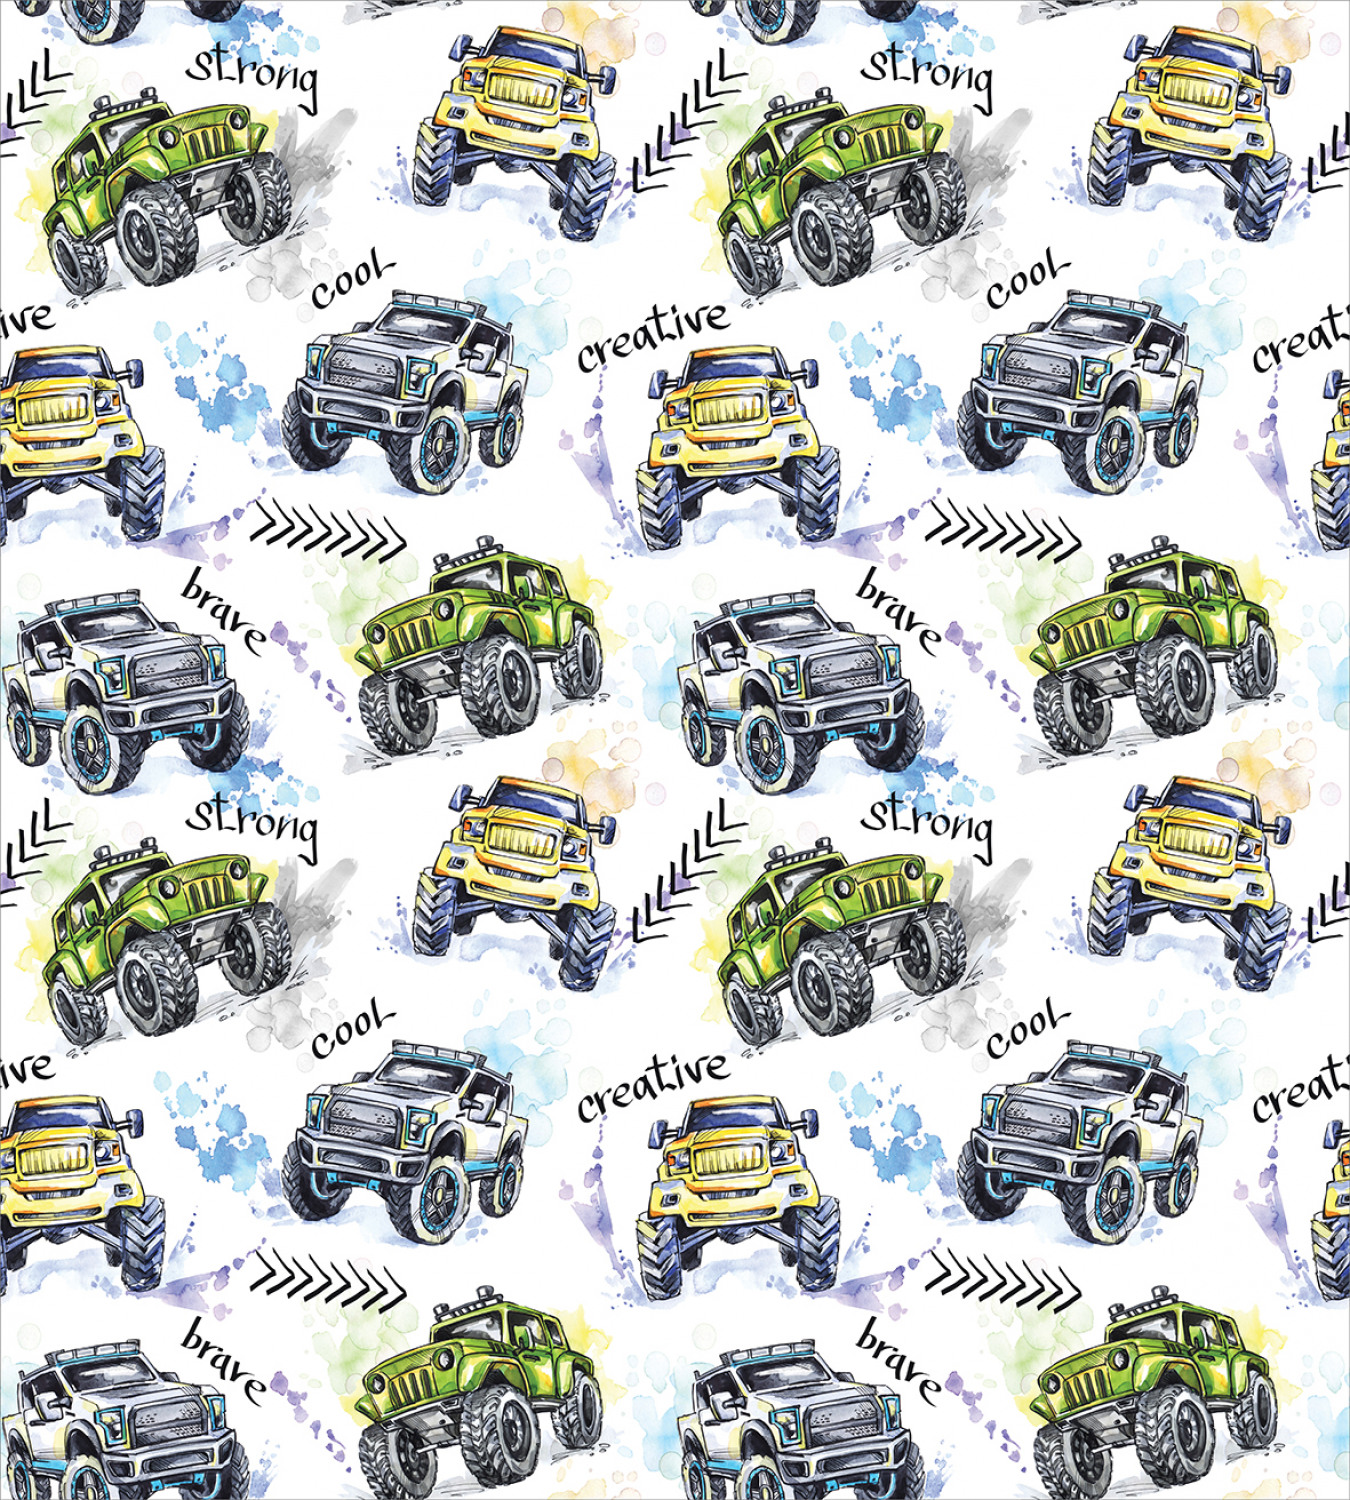 Colorful-Cars-Duvet-Cover-Set-Twin-Queen-King-Sizes-with-Pillow-Shams-Bedding miniature 89